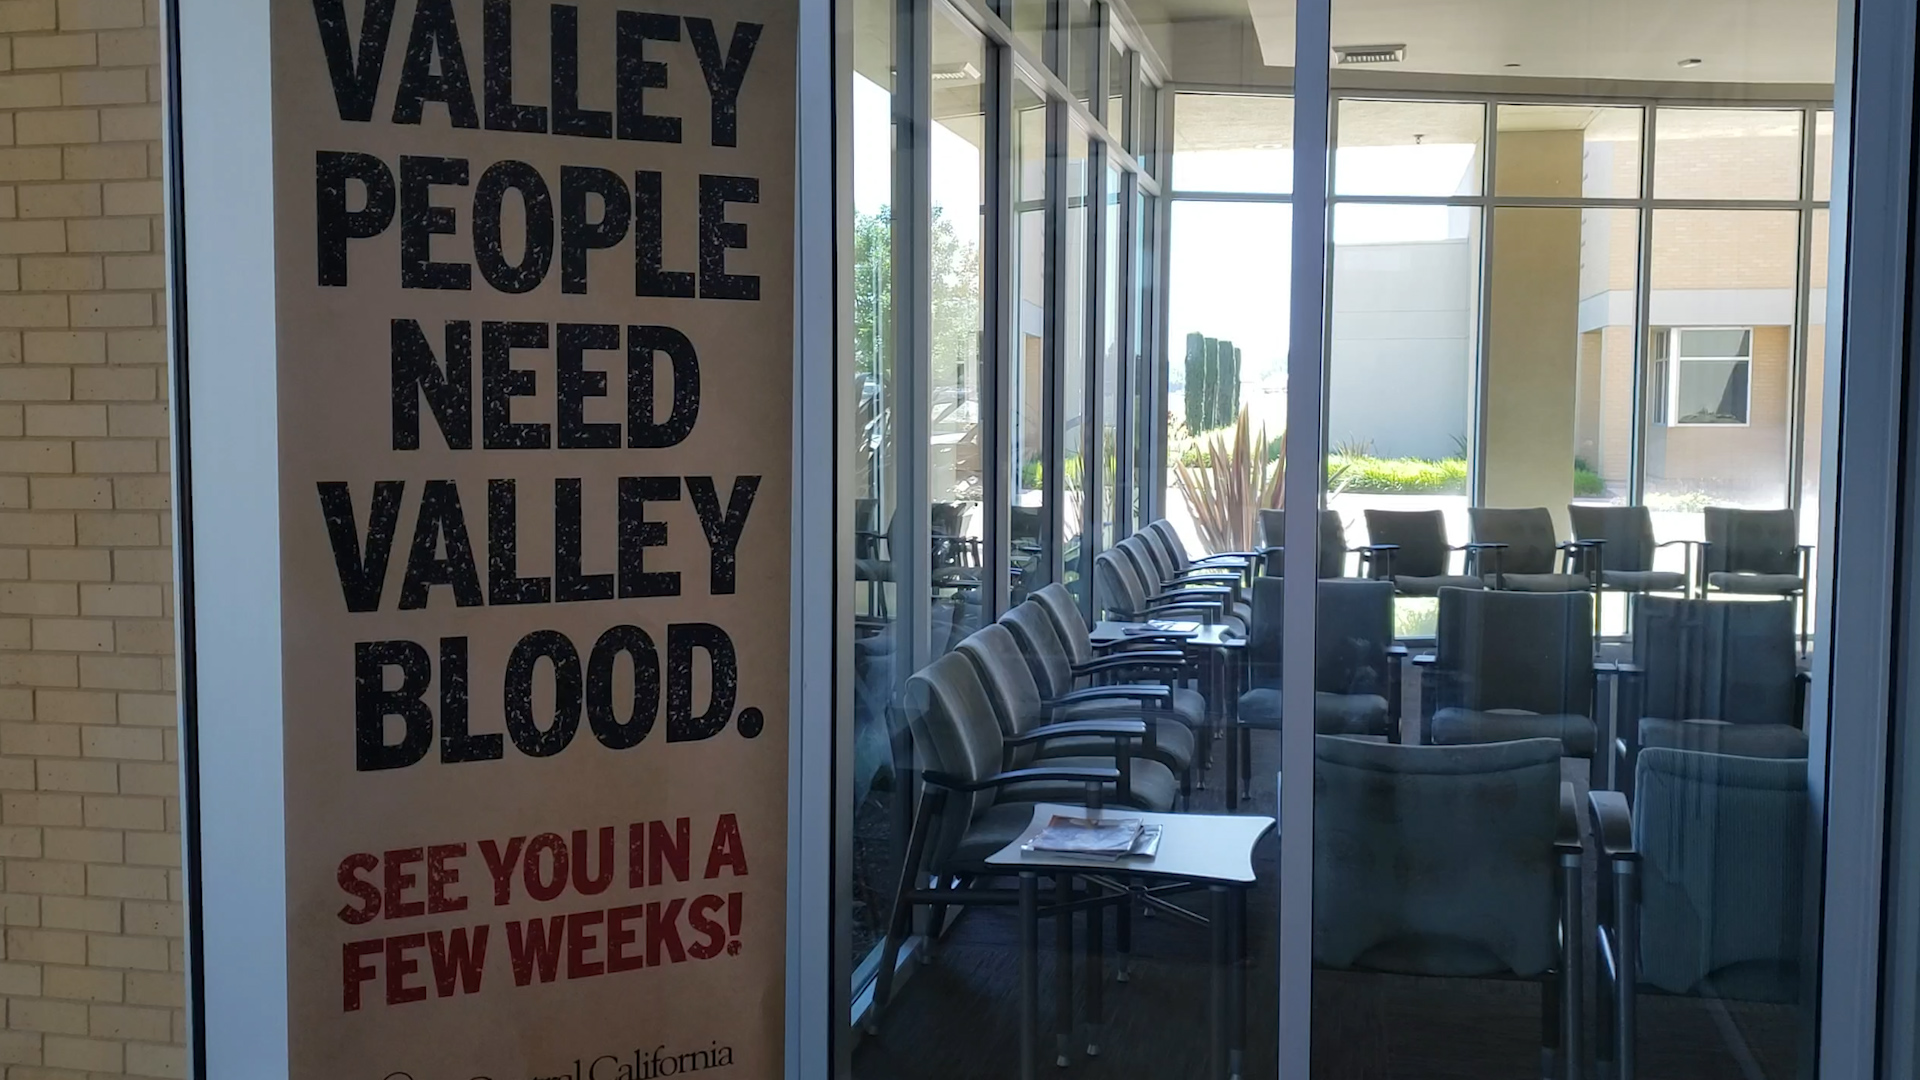 See you in a few week! Valley Blood Center Image.